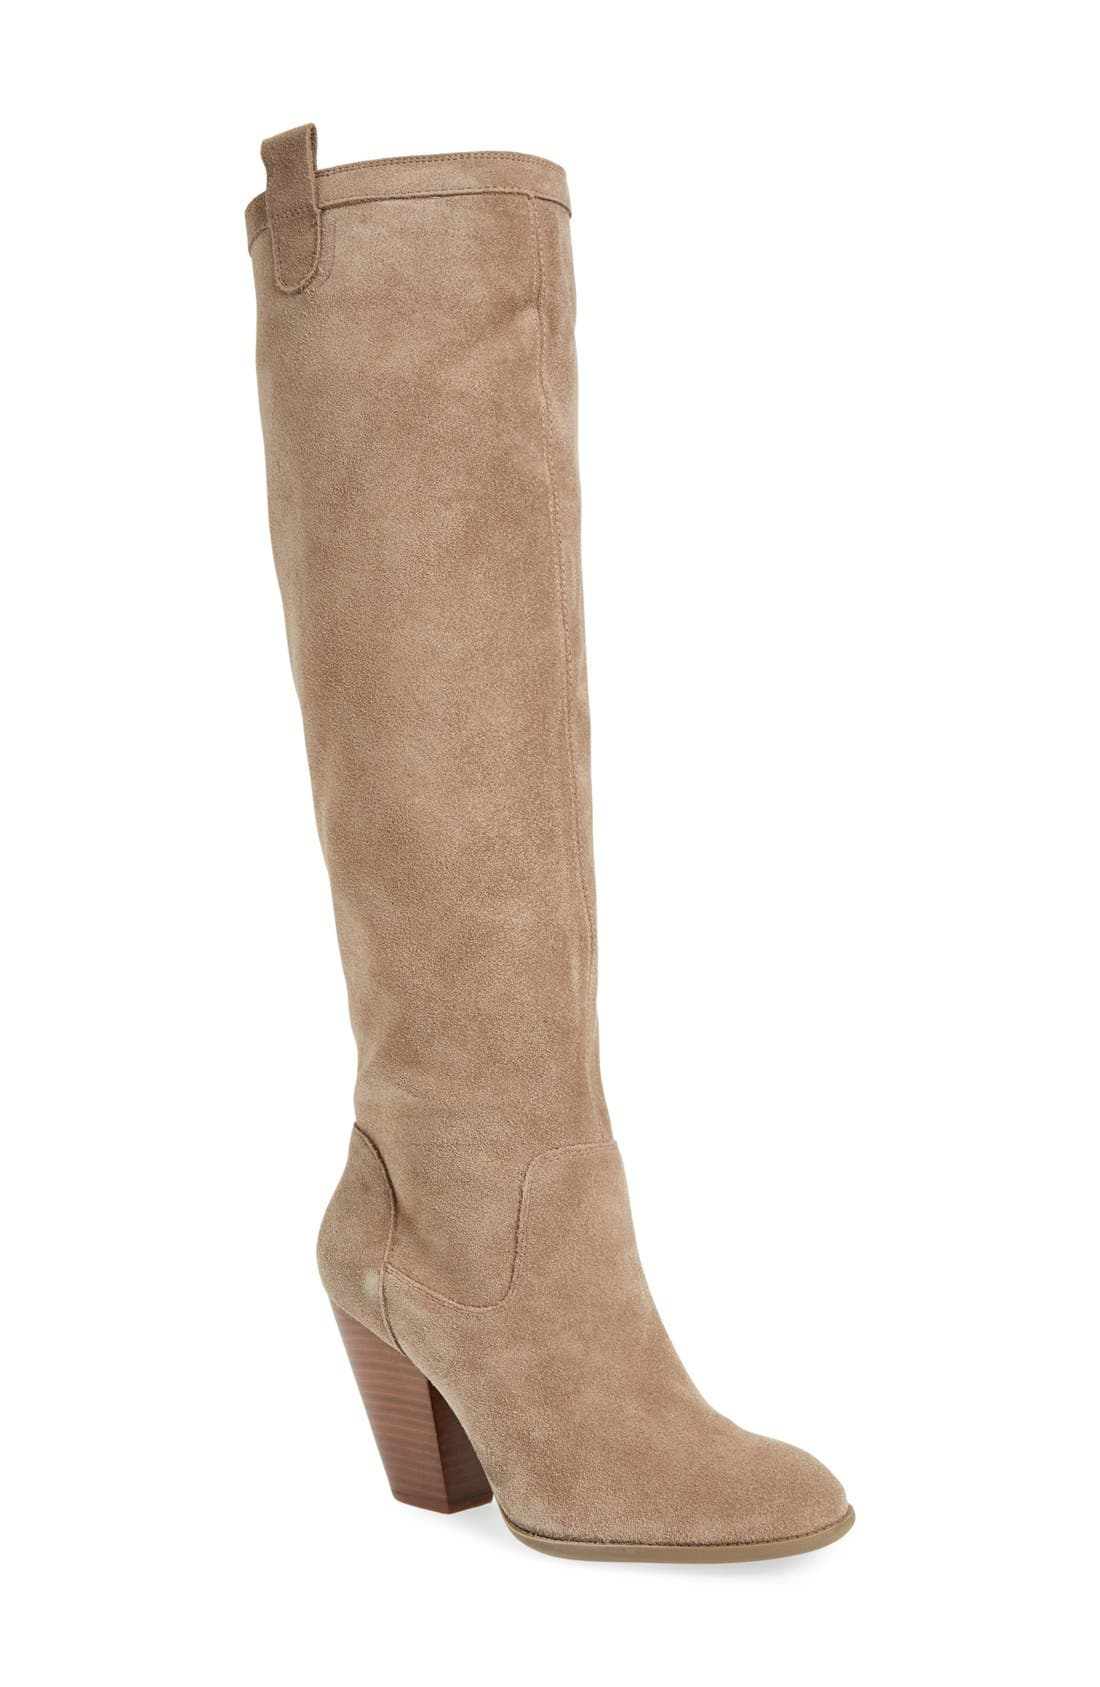 Alternate Image 1 Selected - Sole Society 'Rumer' Slouchy Knee High Boot (Women)